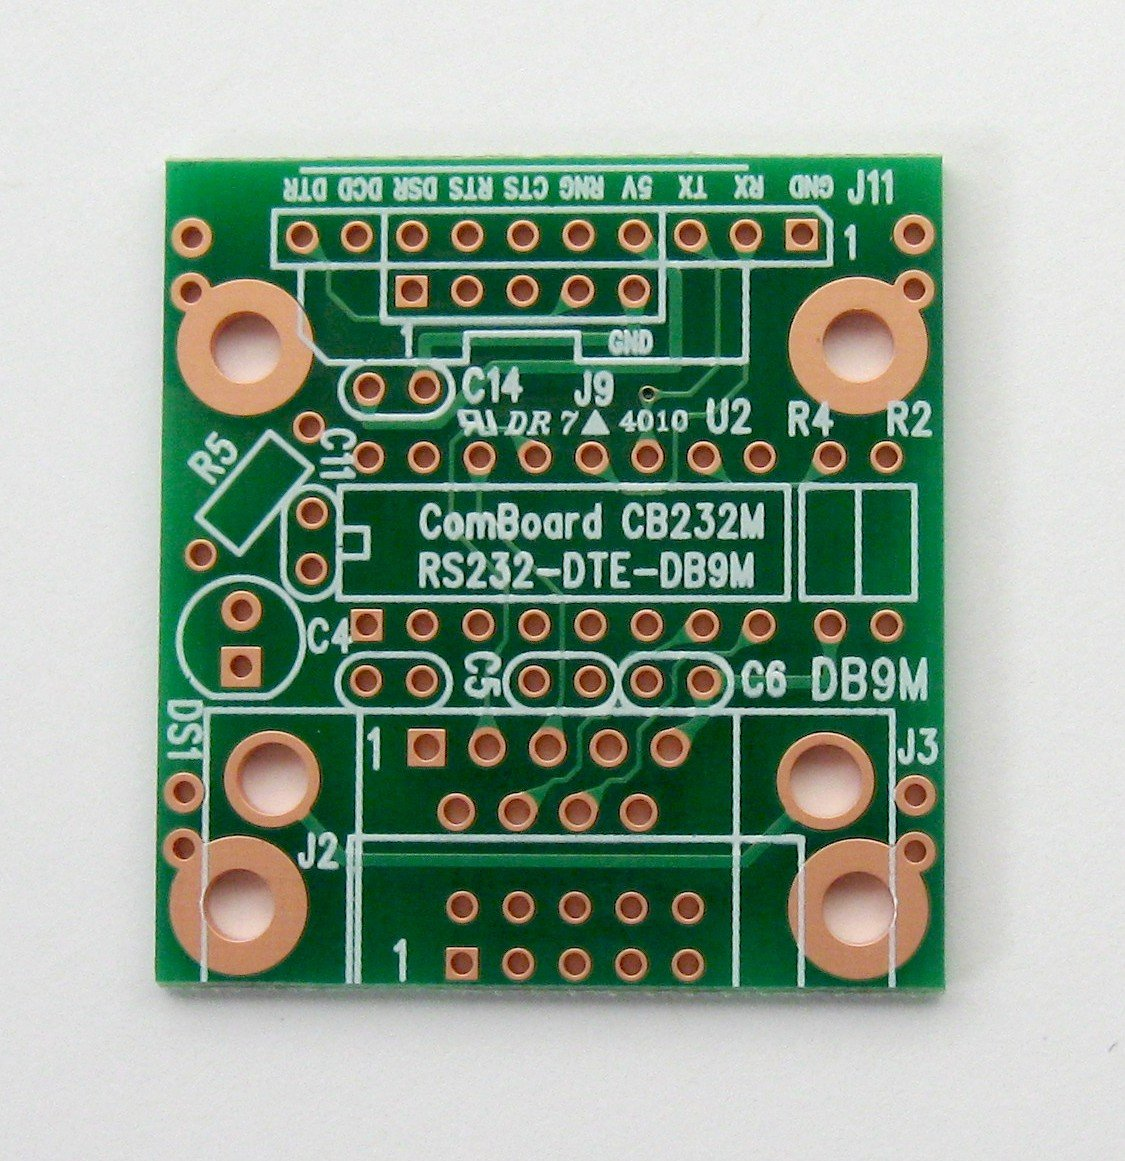 Pcb Cb232m Comboard Adapter Rs 232 Db 9m Dte Solderless Breadboard With 400 Tie Points And Matching Unpopulated 2 Sided 140 X 150 In 356 381 Mm Home Improvement